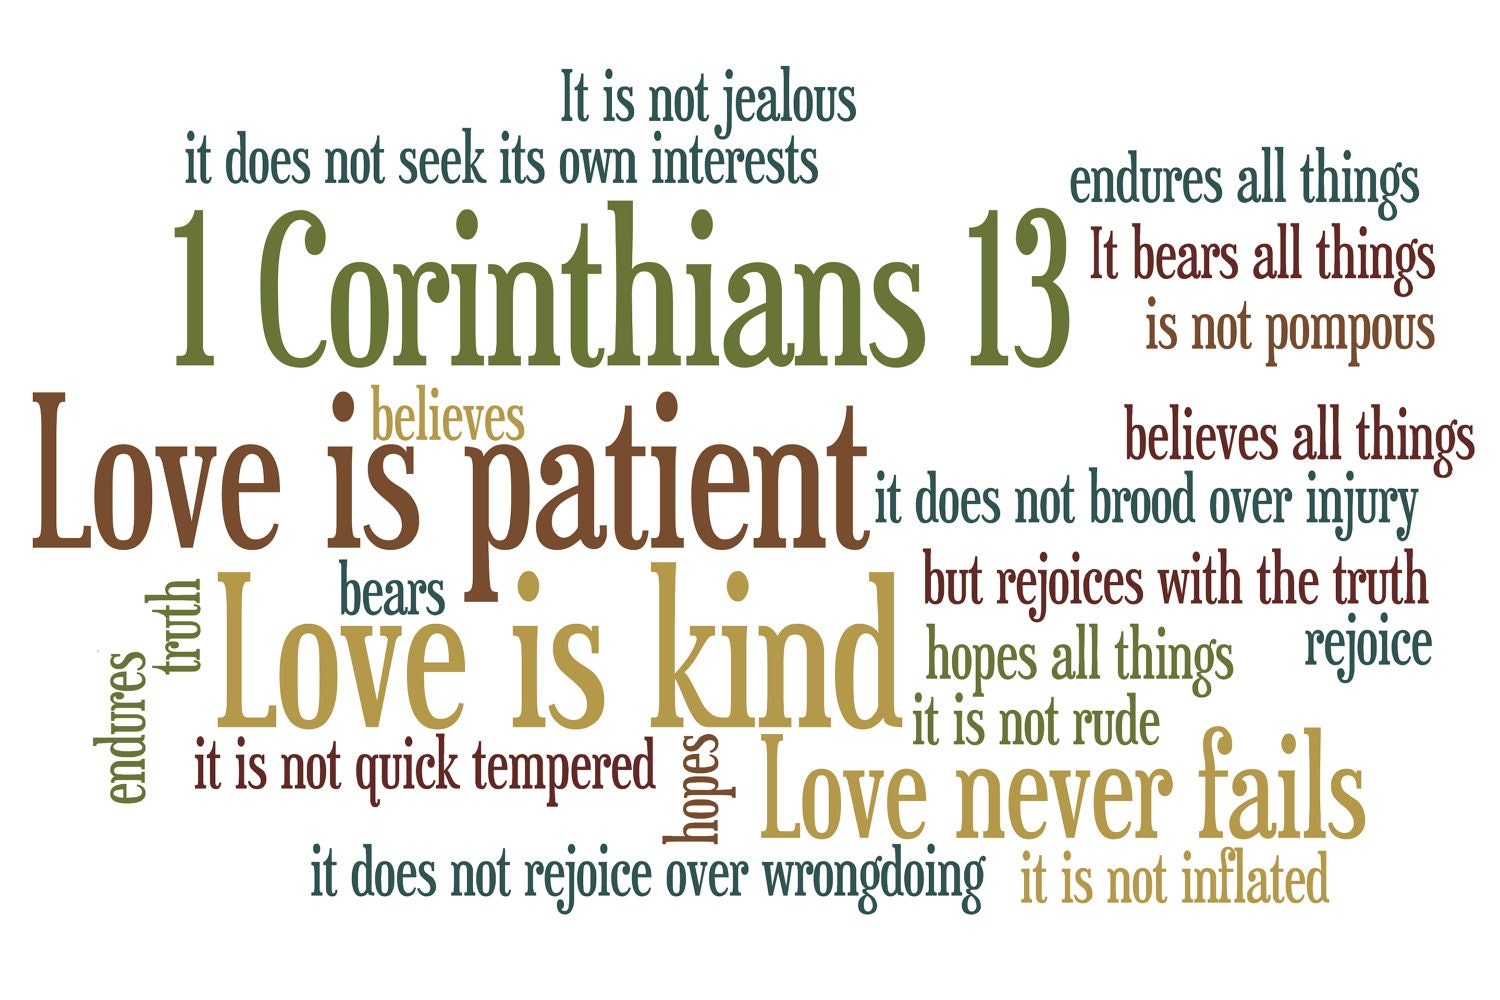 Quotes About Love Verses Bible : Love Quotes Pictures Images Free 2013: Bible Love Quotes